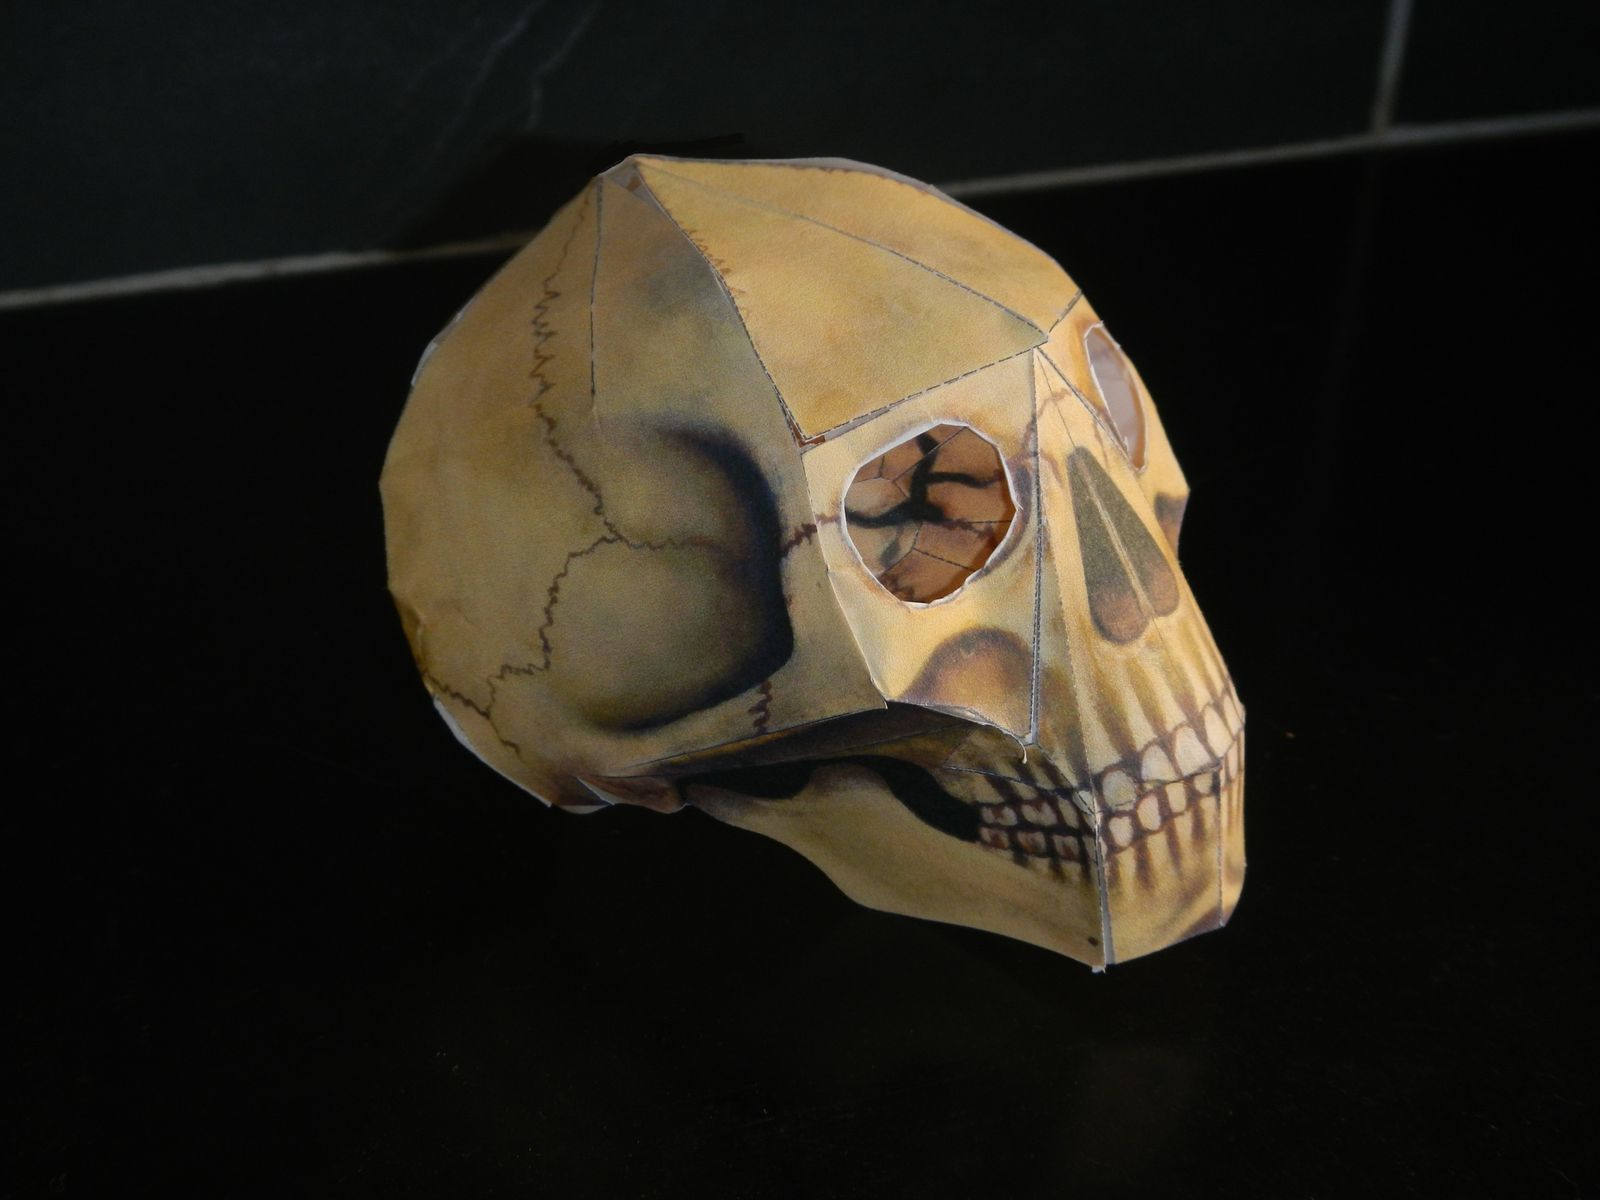 human skull origami le pot 2 colle amp cie